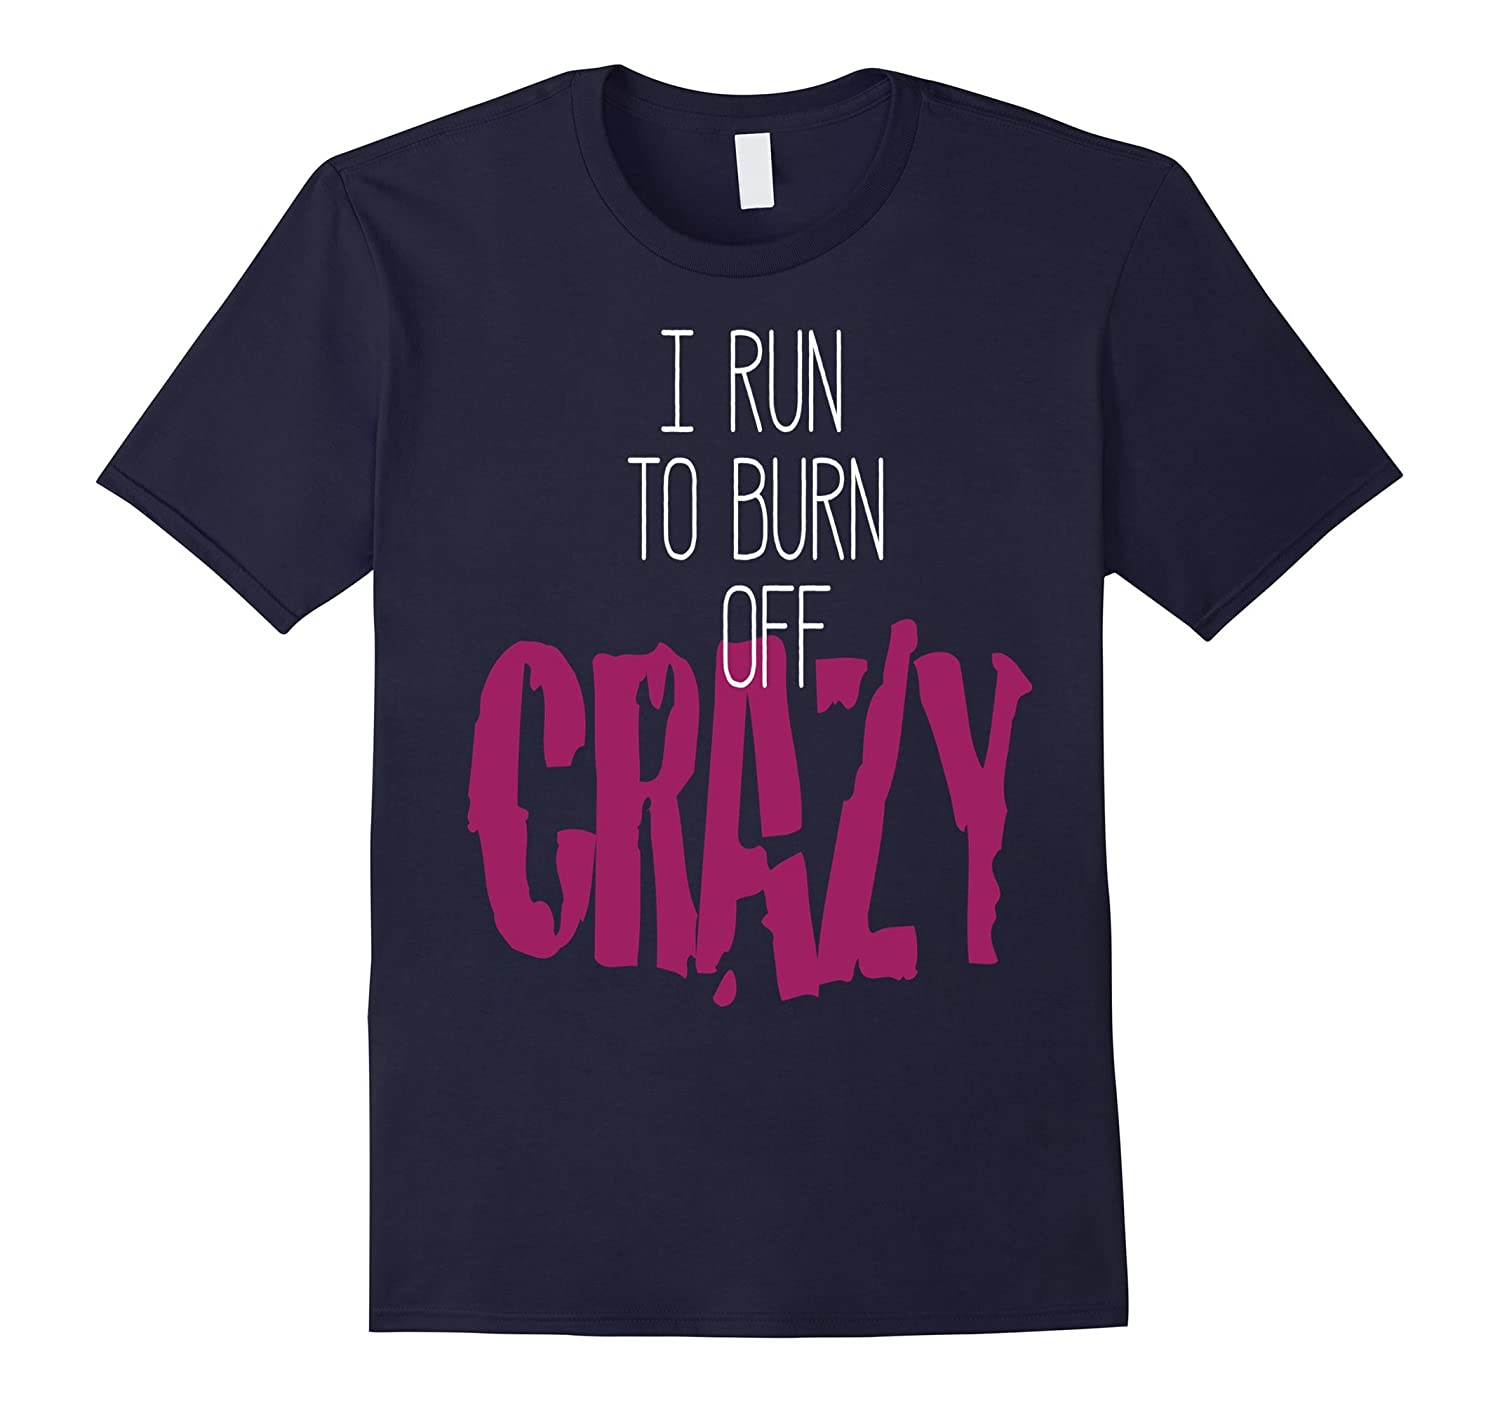 I Run to Burn Off The Crazy T-Shirt Funny Running T-shirt